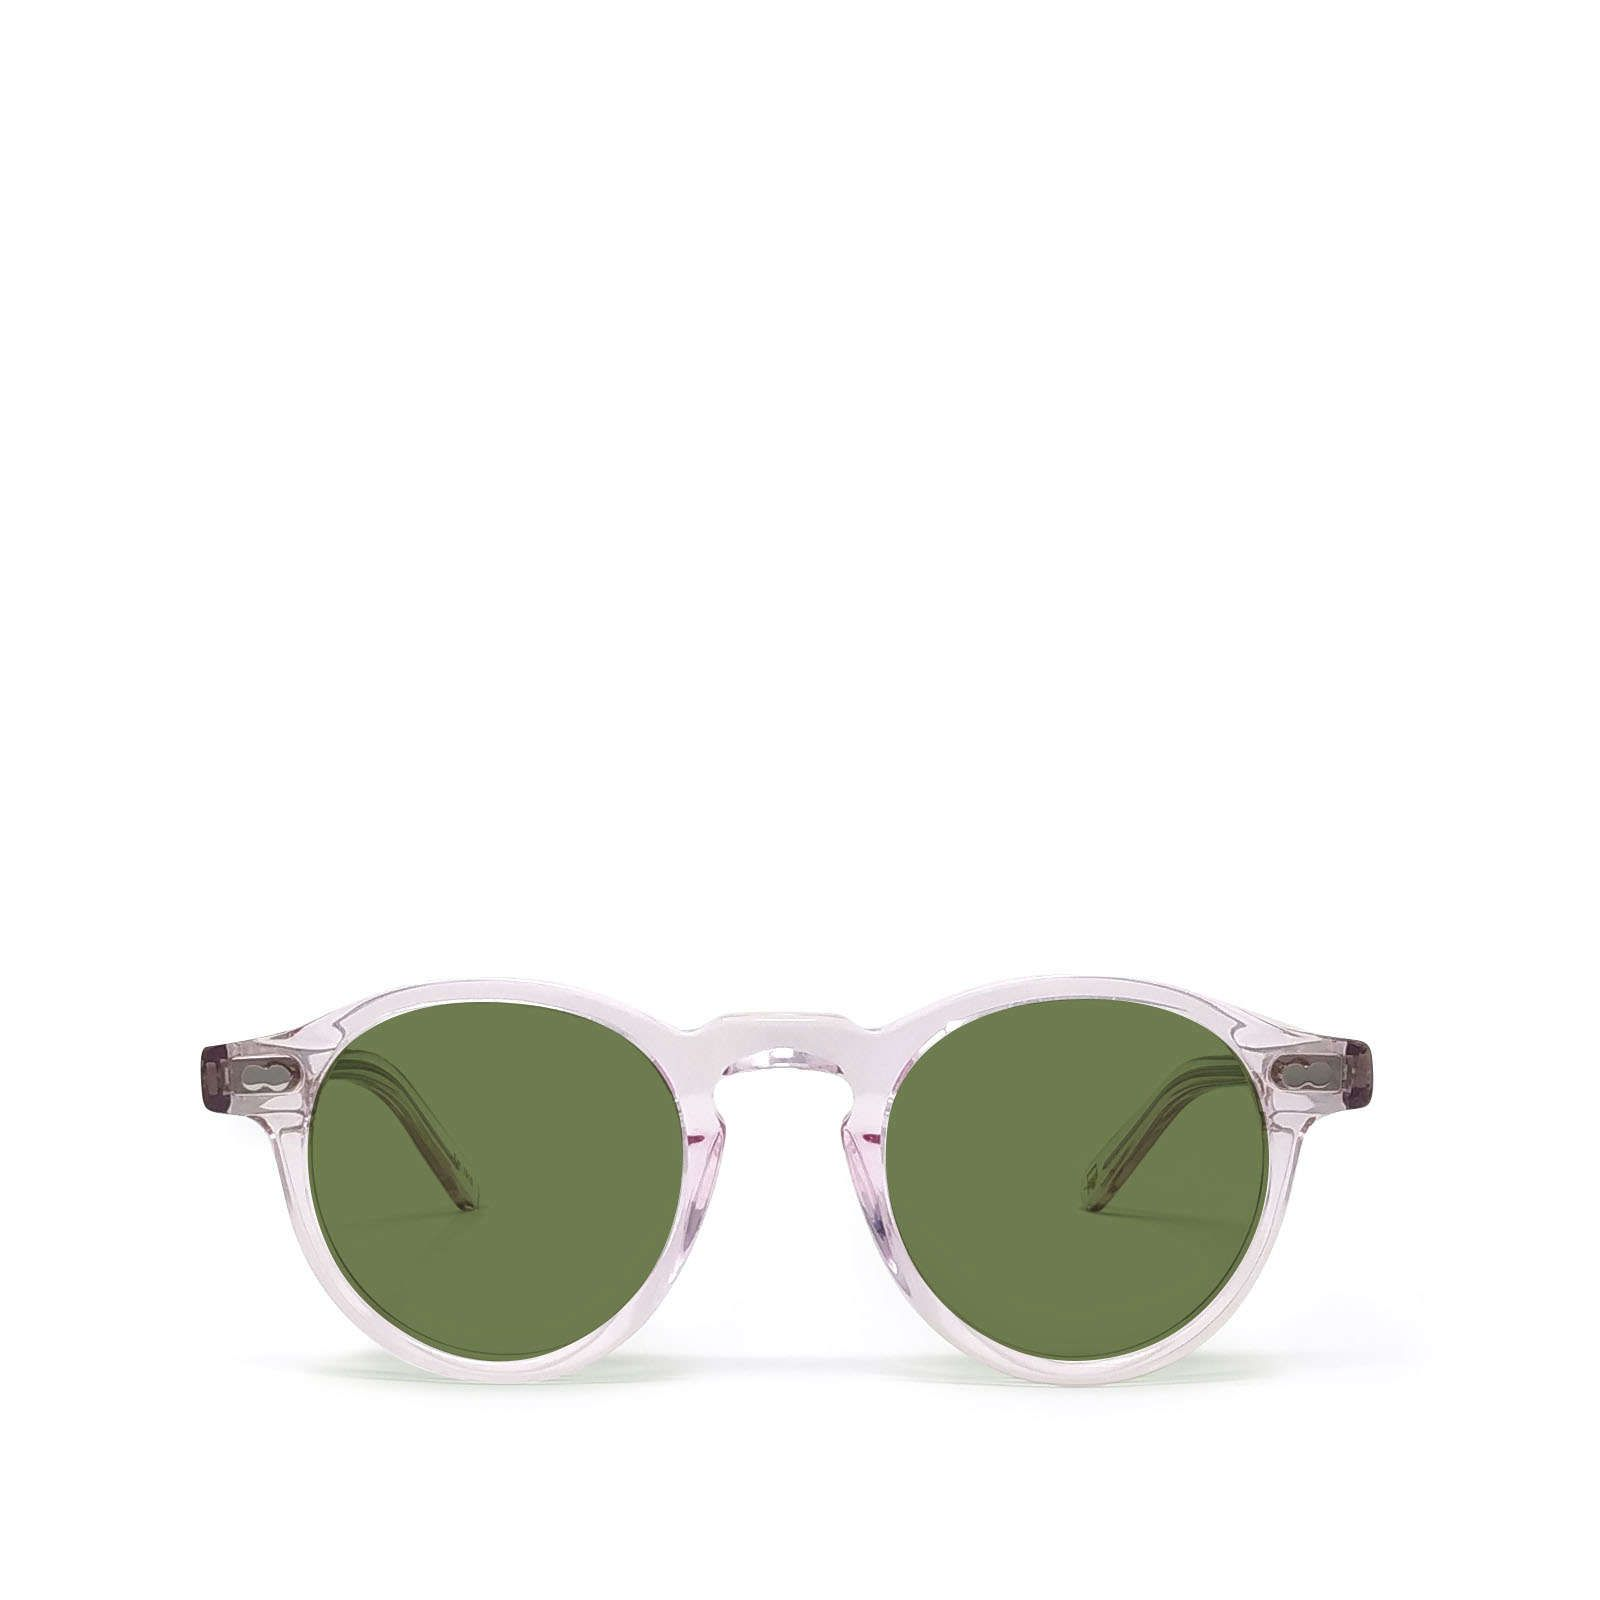 Moscot MOSCOT WOMEN'S PINK METAL SUNGLASSES